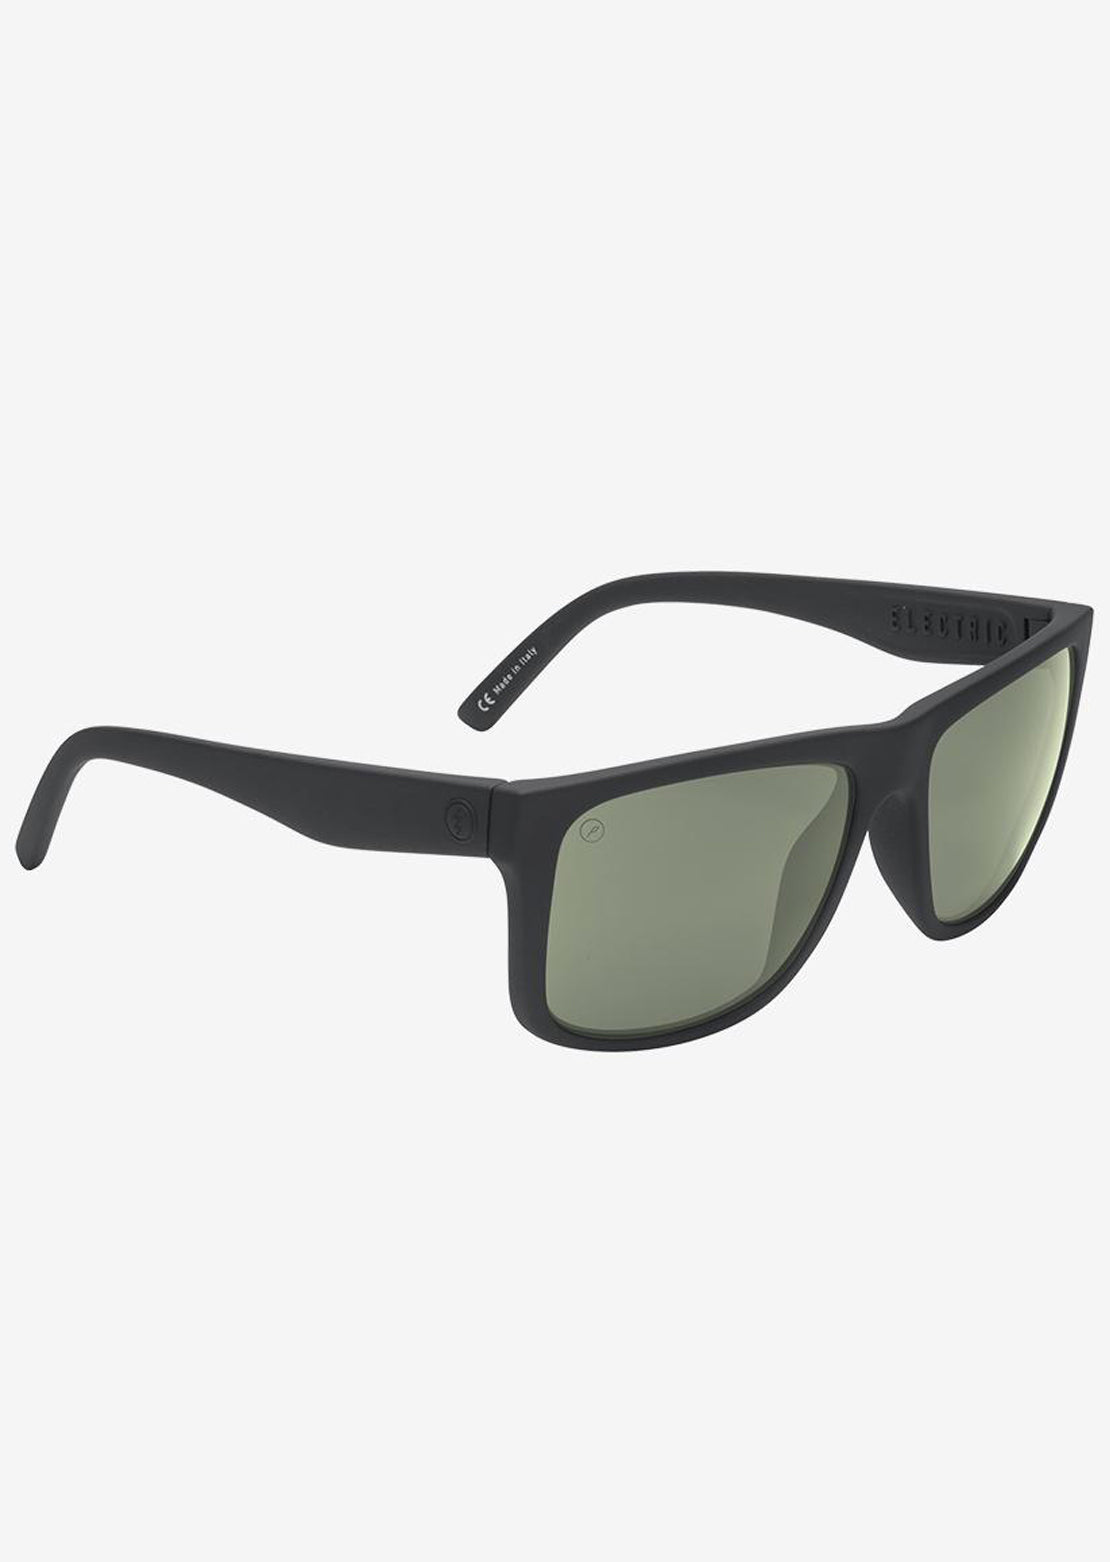 Electric Men's Swingarm XL Polarized Sunglasses Matte Black/Polarized Grey